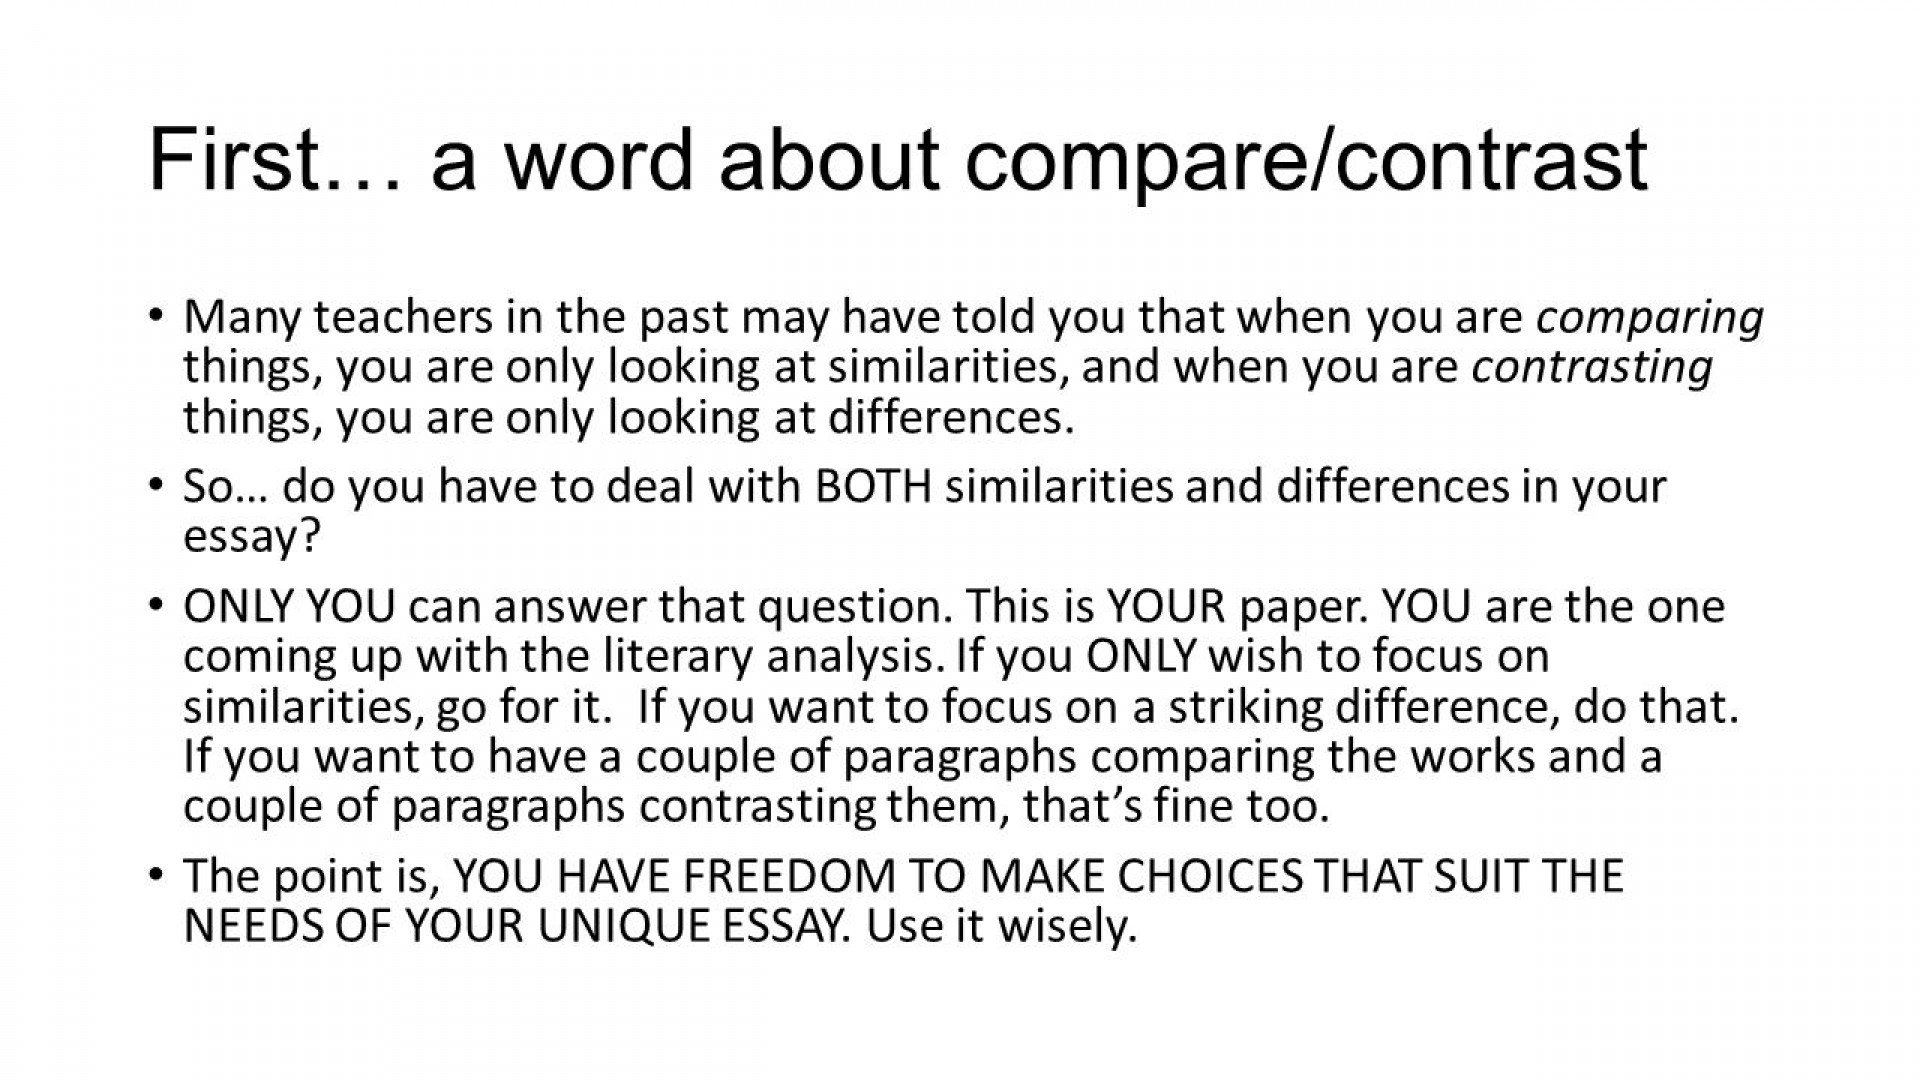 014 How To Write Compare And Contrast Essay Writing About Literature Ppt Powerpoint For Middle School Sl Download Free Presentation Persuasive Argumentative College Slideshare Striking Block Method Conclusion 1920